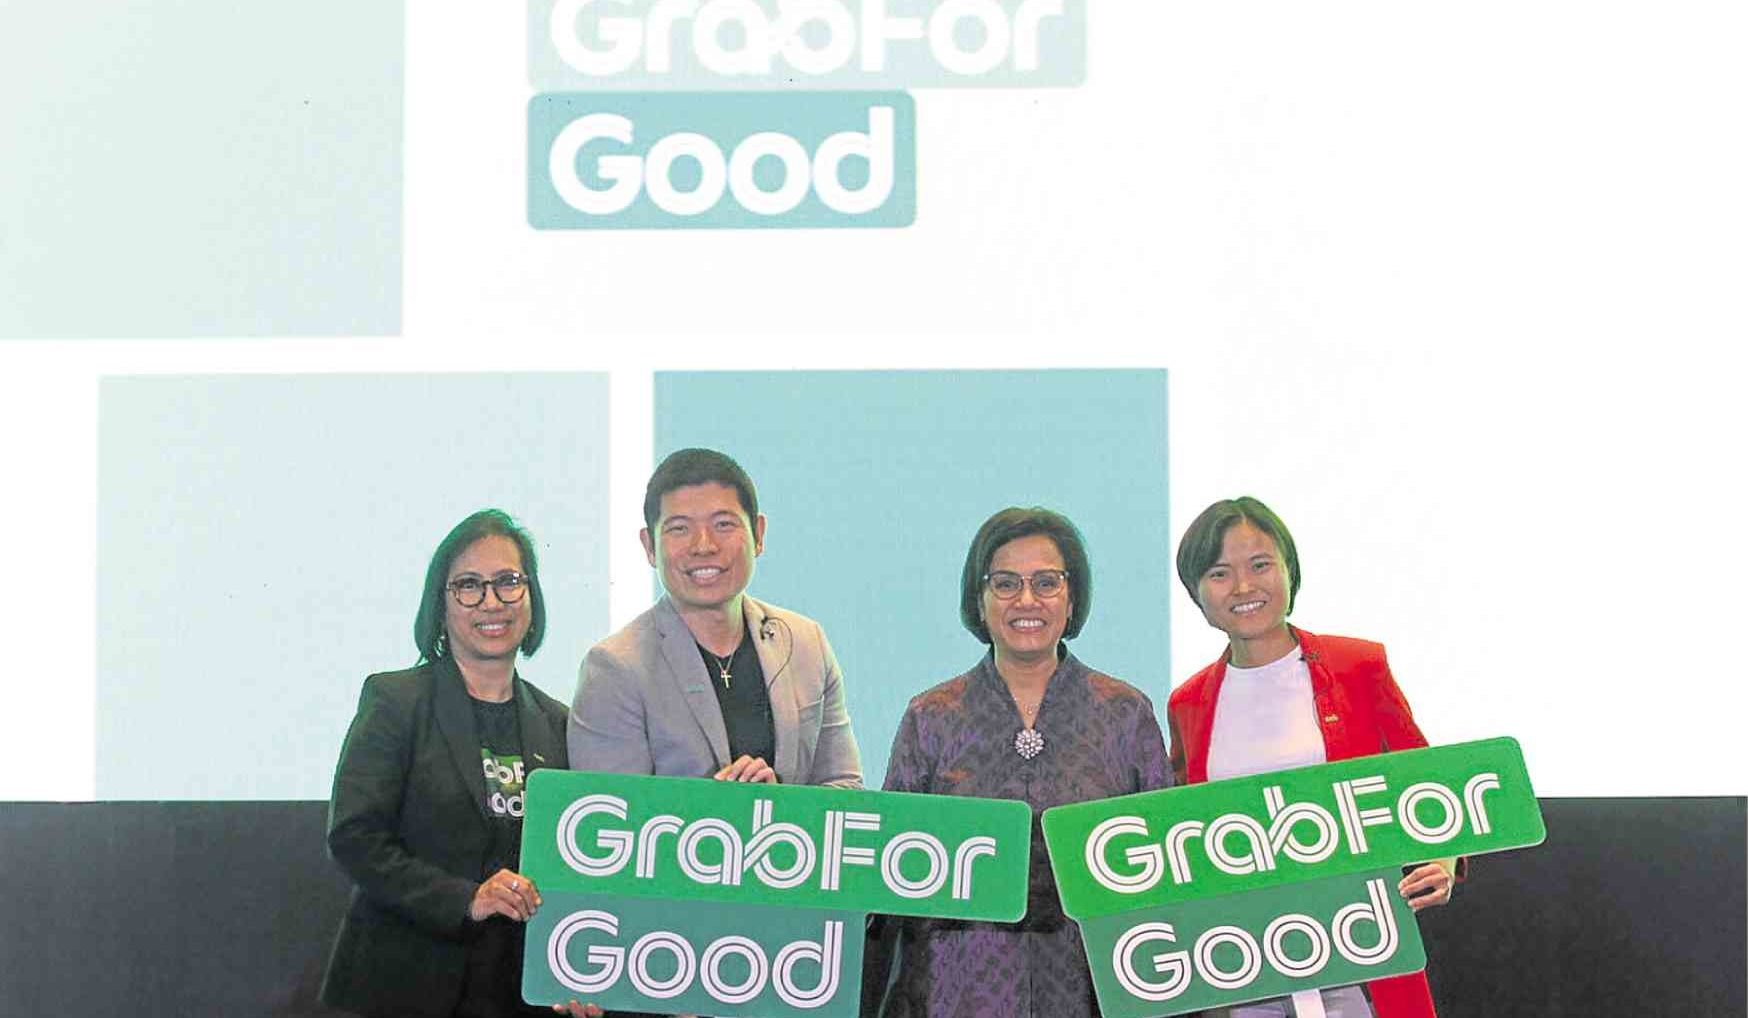 (From left) Neneng Goenadi, managing director, Grab Indonesia; Anthony Tan, CEO and co-founder, Grab; Sri Mulyani, Minister of Finance of the Republic of Indonesia; Hooi Ling Tan, co-founder, Grab.  Image: Inquirer